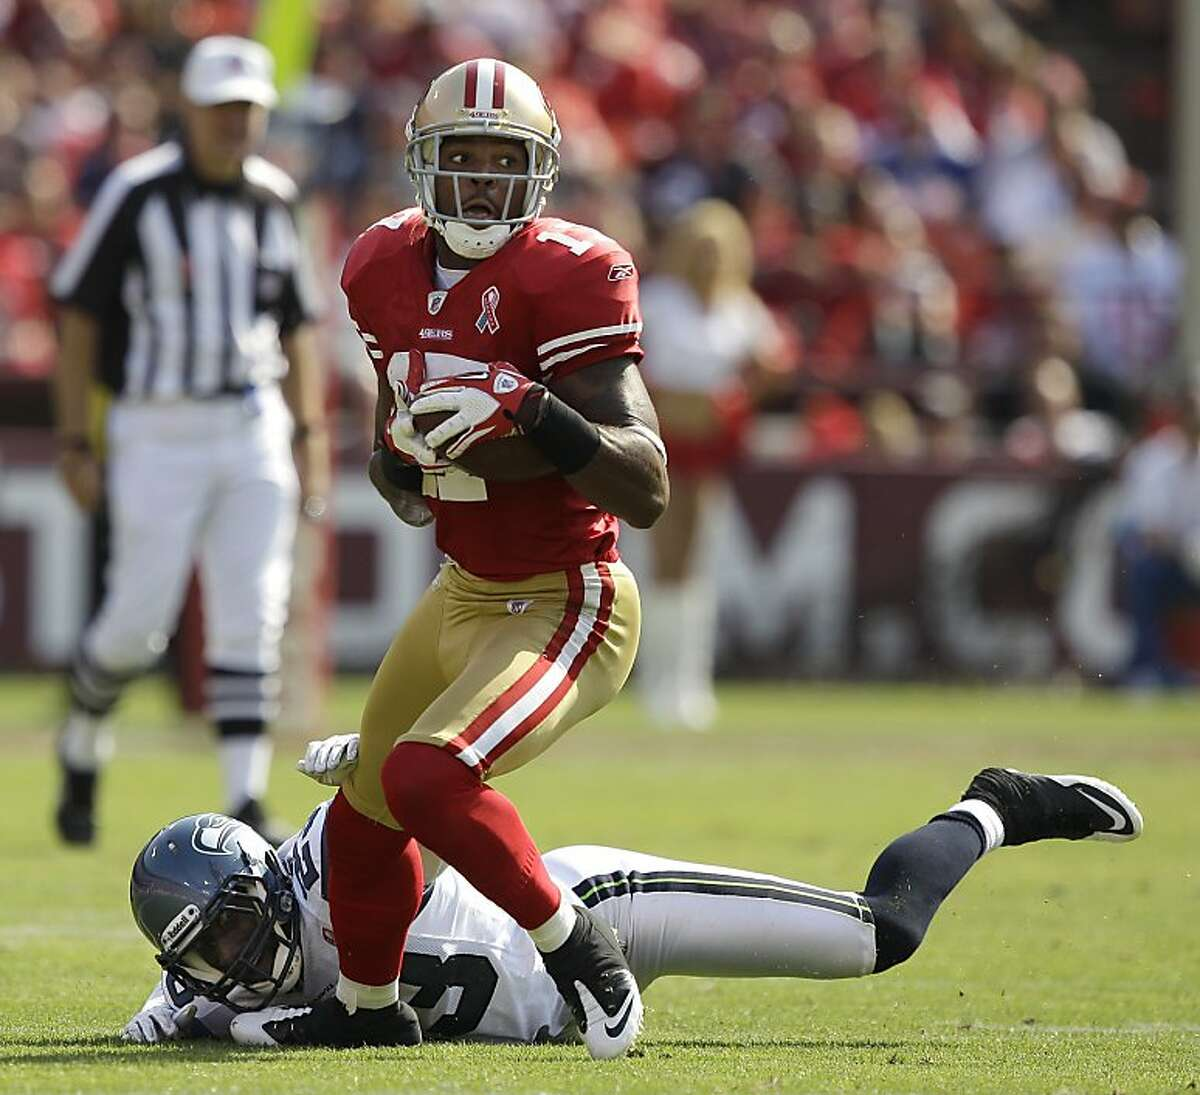 San Francisco 49ers wide receiver Braylon Edwards (17) runs away from Seattle Seahawks defensive back Marcus Trufant (23) in the fourth quarter of an NFL football game in San Francisco, Sunday, Sept. 11, 2011. (AP Photo/Marcio Jose Sanchez)